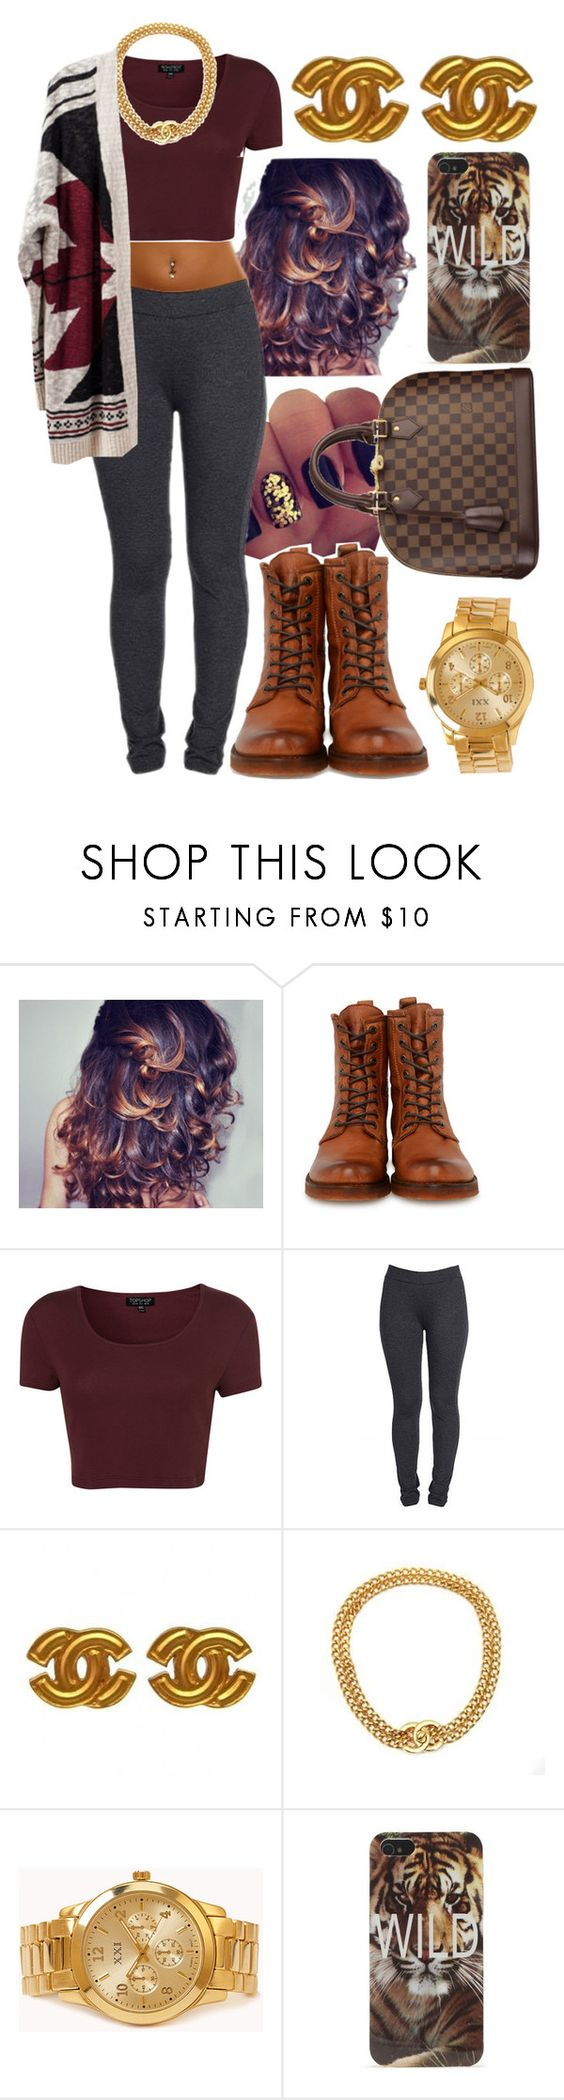 """""""She Gone Do What She Want And That's Okay"""" by dajvuuloaf ❤ liked on Polyvore featuring Frye, Topshop, Chanel, Louis Vuitton, Forever 21 and With Love From CA"""